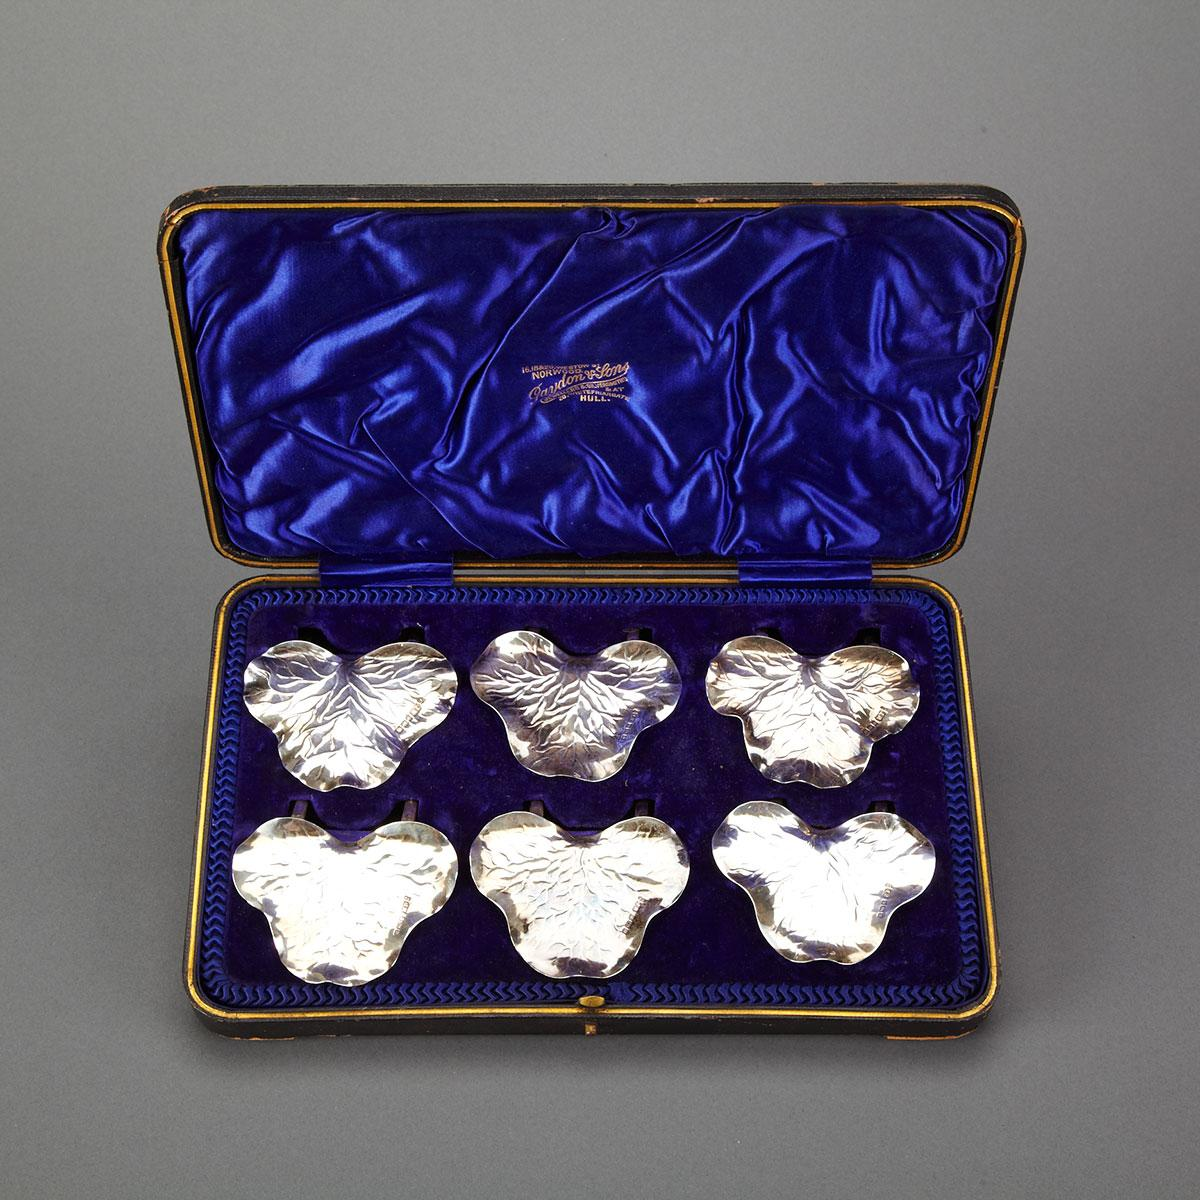 Set of Six Edwardian Silver Leaf Shaped Place Card Holders, Joseph Rodgers & Sons, Sheffield, 1905